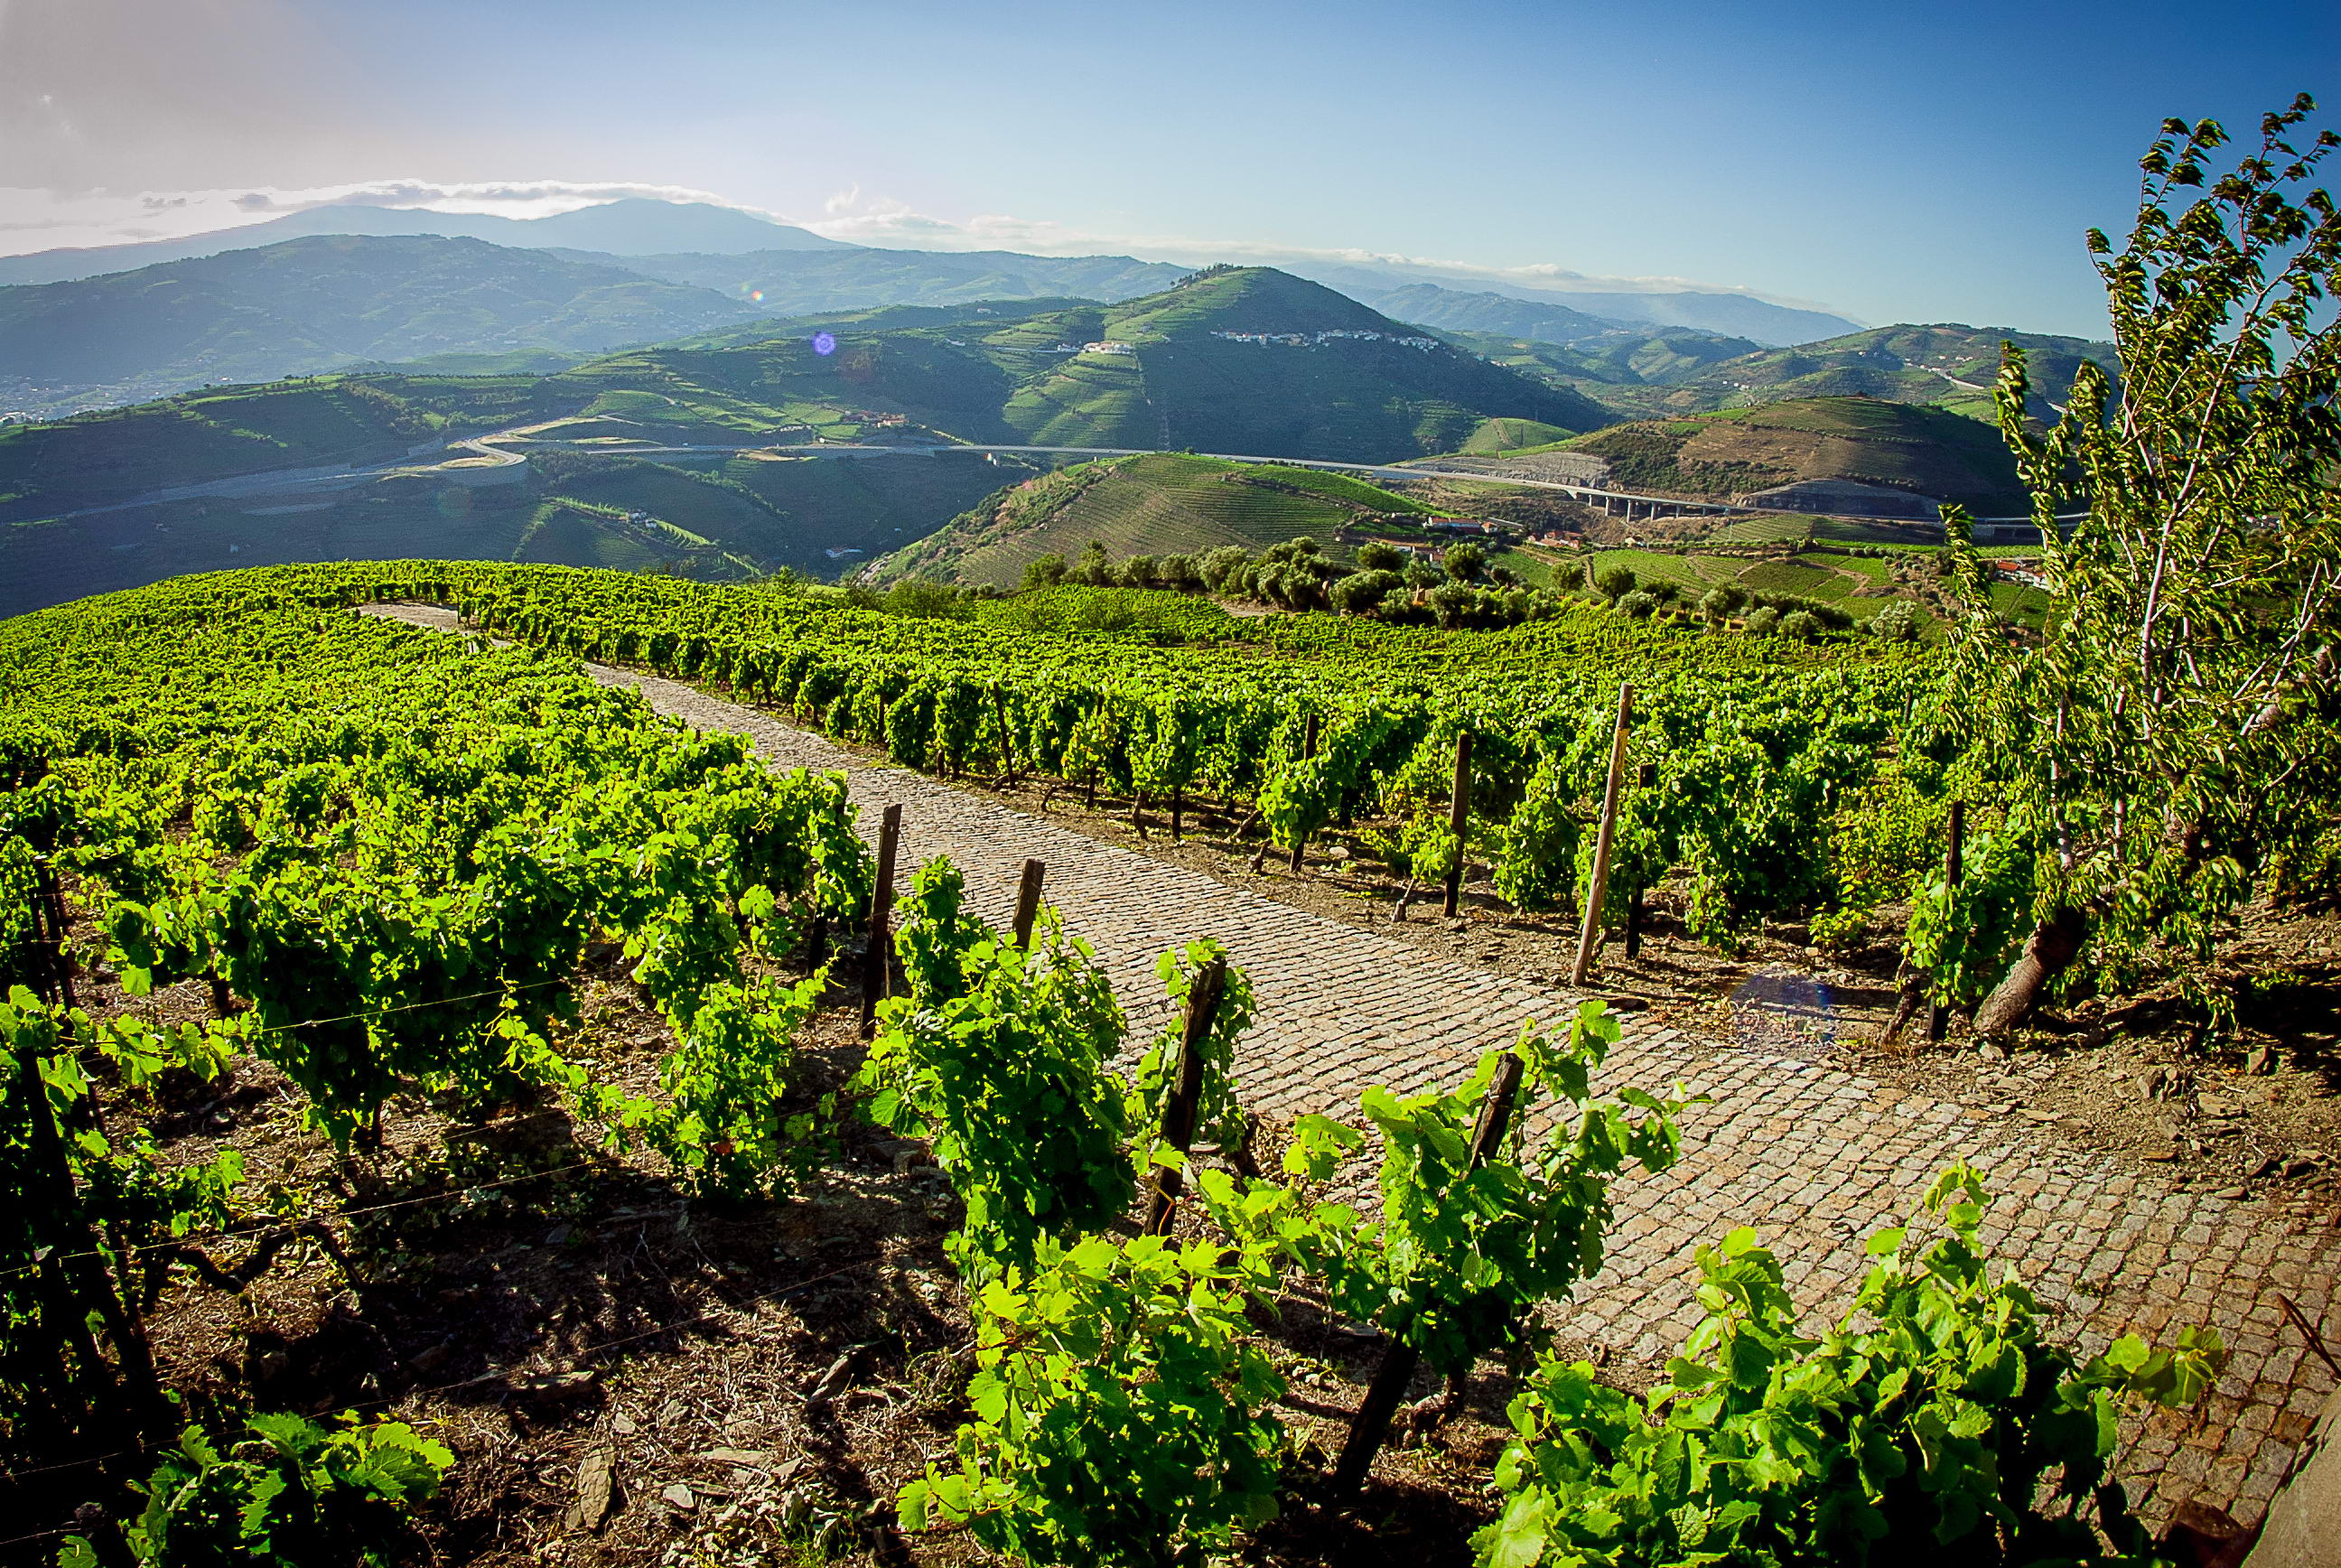 Food & Wine Tour in North e Douro